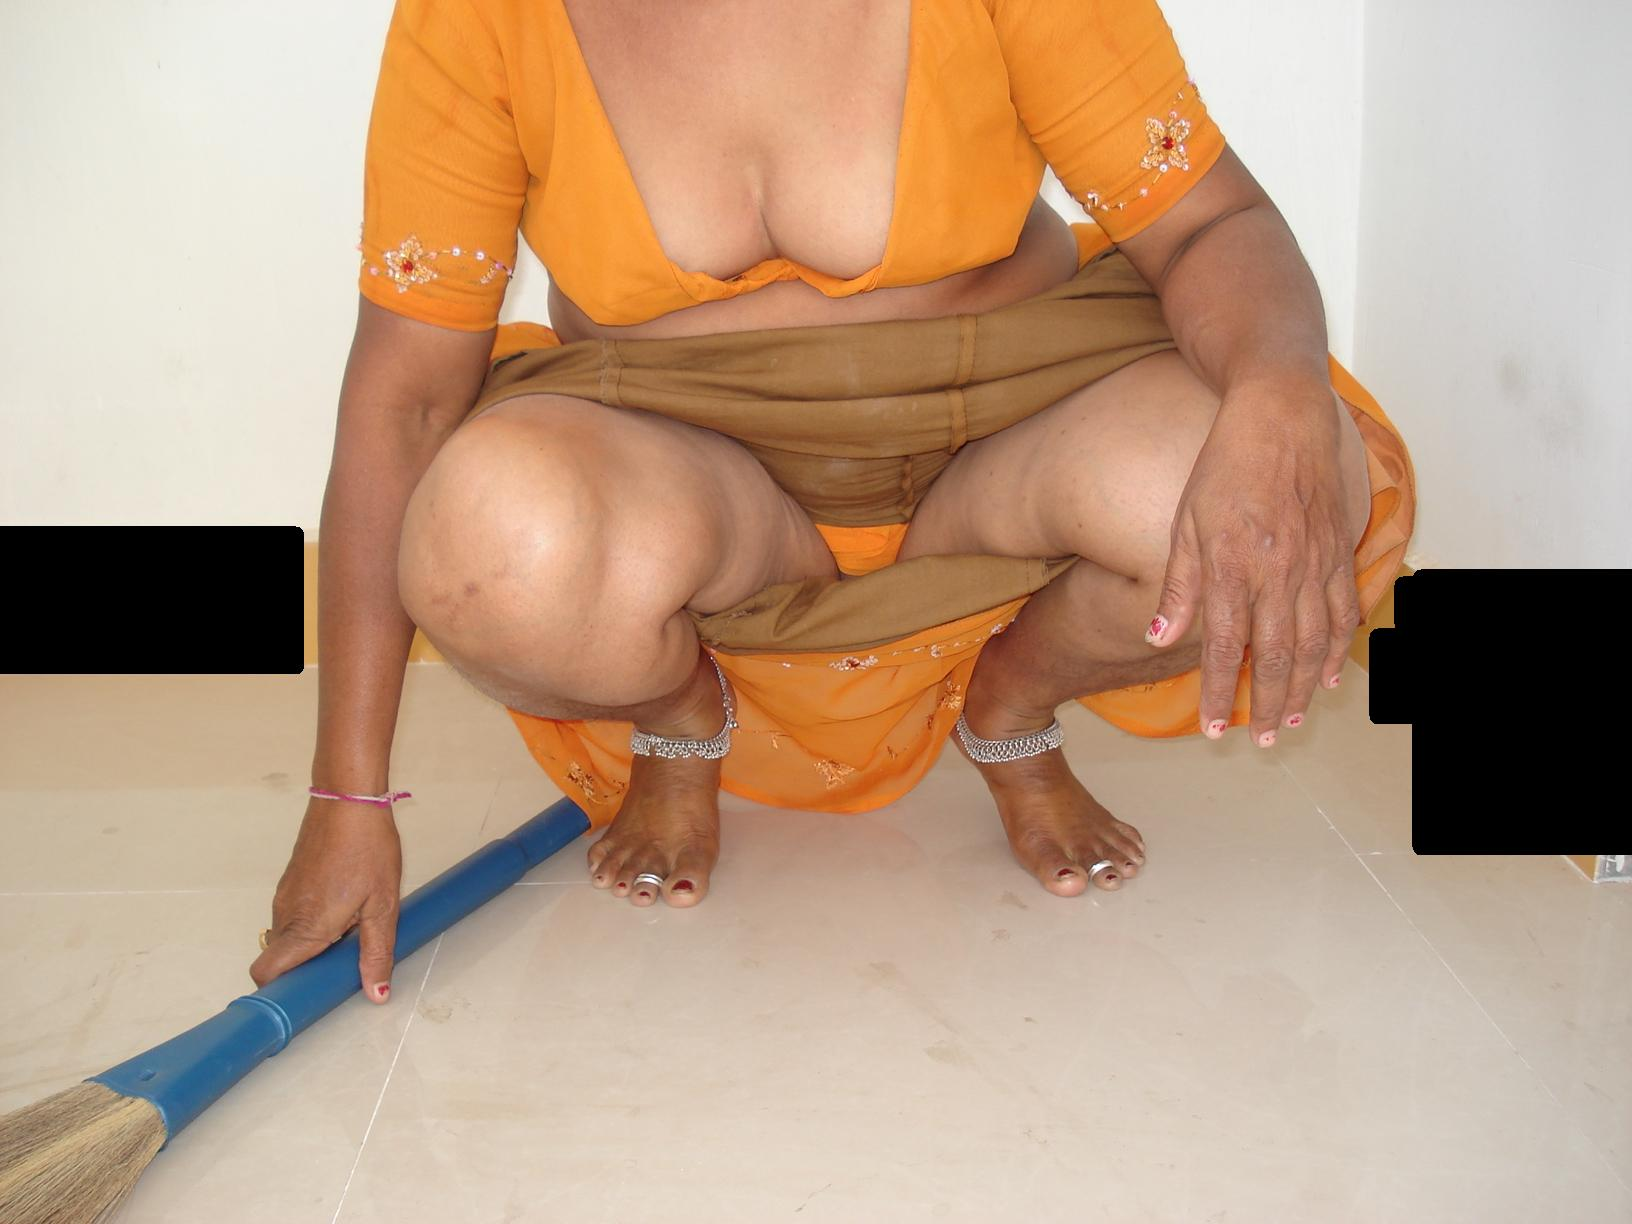 Seems desi aunties nude public